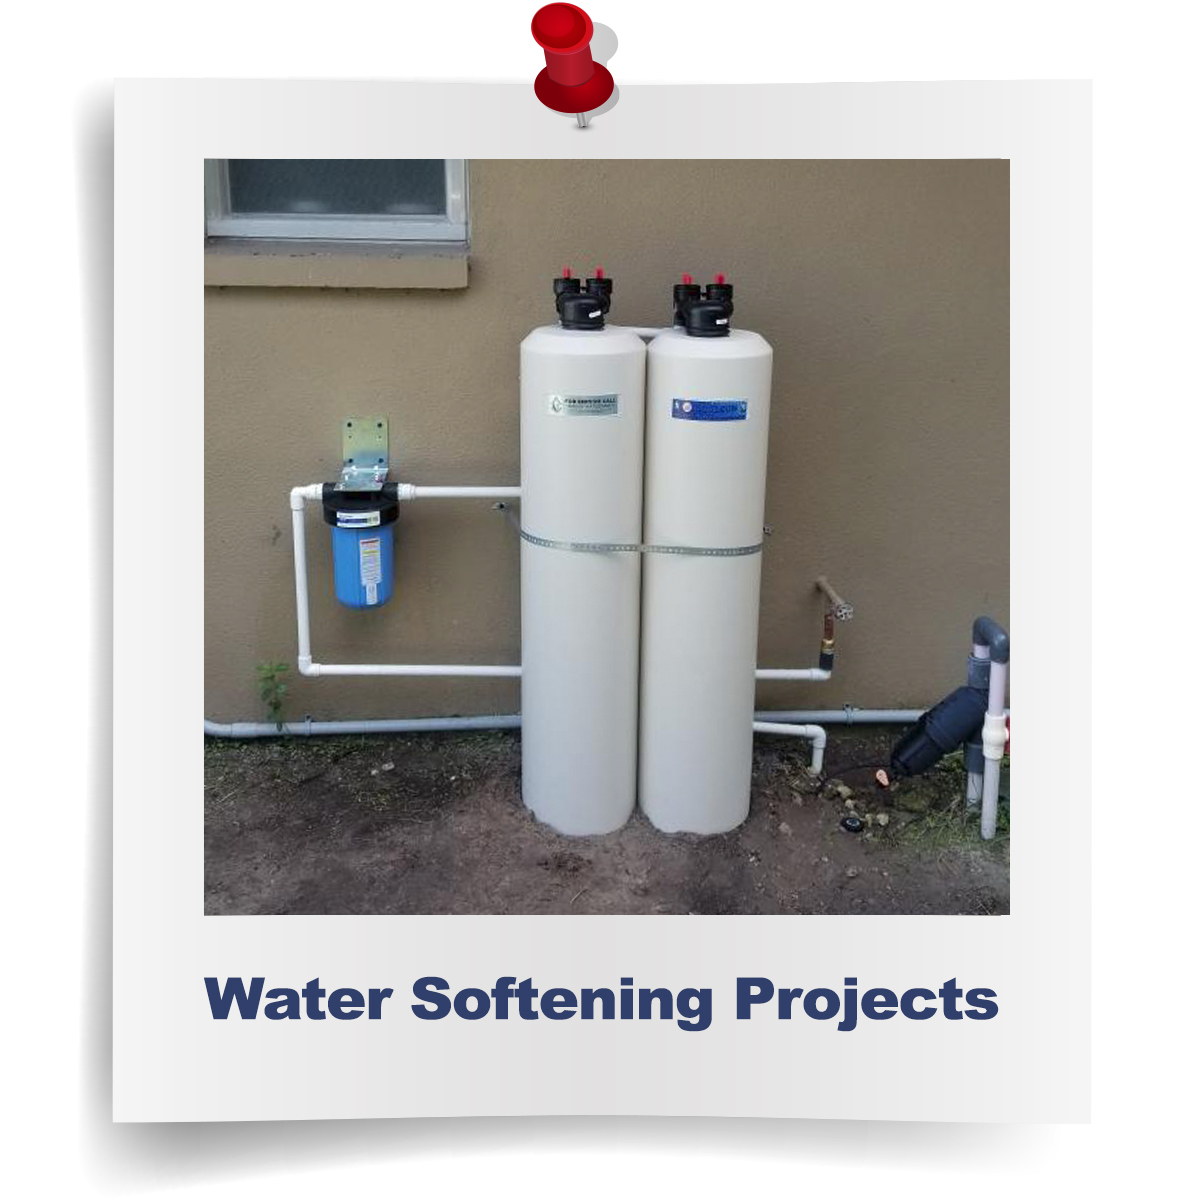 water softening/conditioning projects